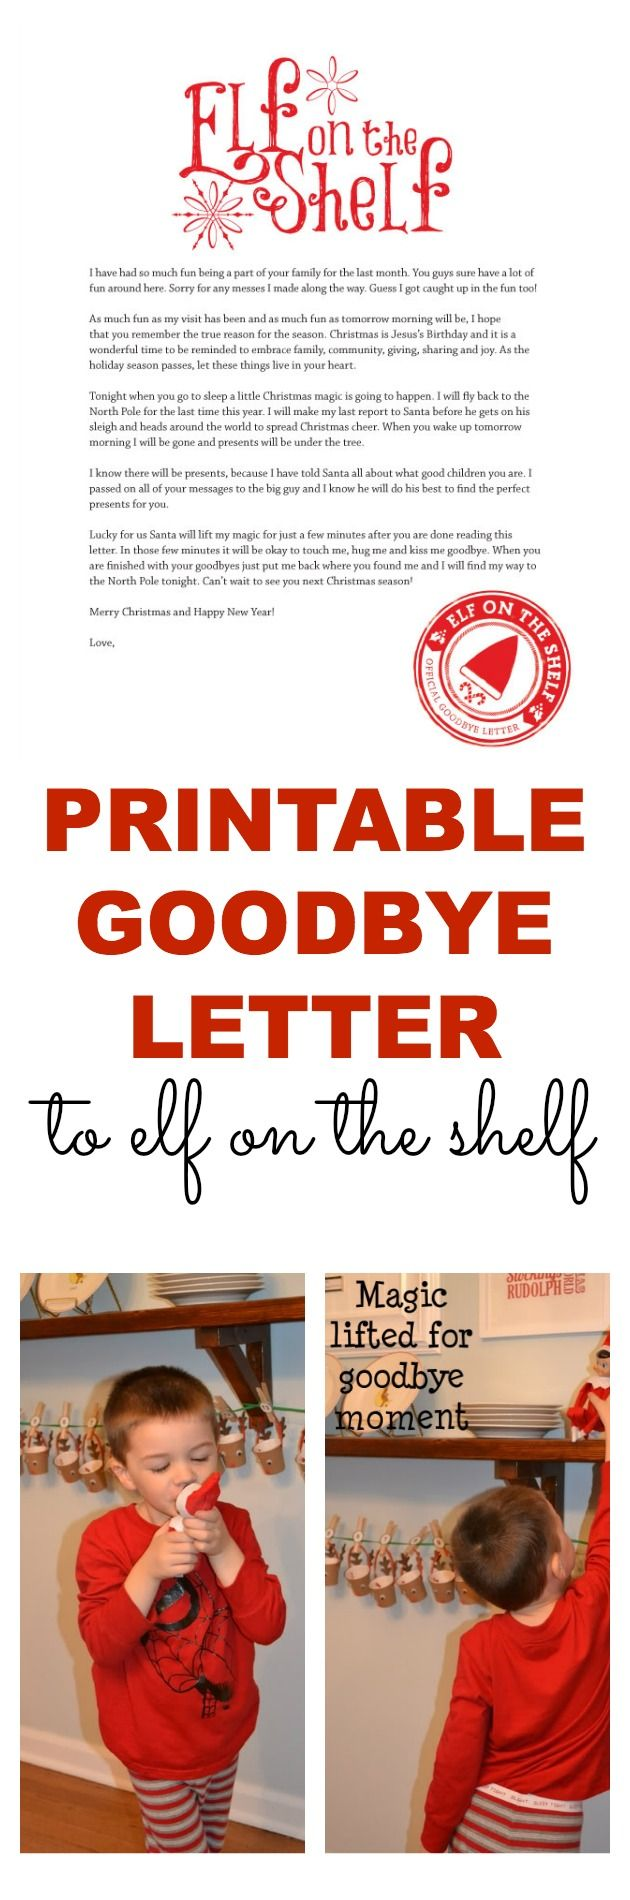 A printable goodbye letter for Elf on the Shelf. Perfect way to wrap up all the fun--even has a reminder about the reason for the season. A MUST HAVE if you do Elf on the Shelf.